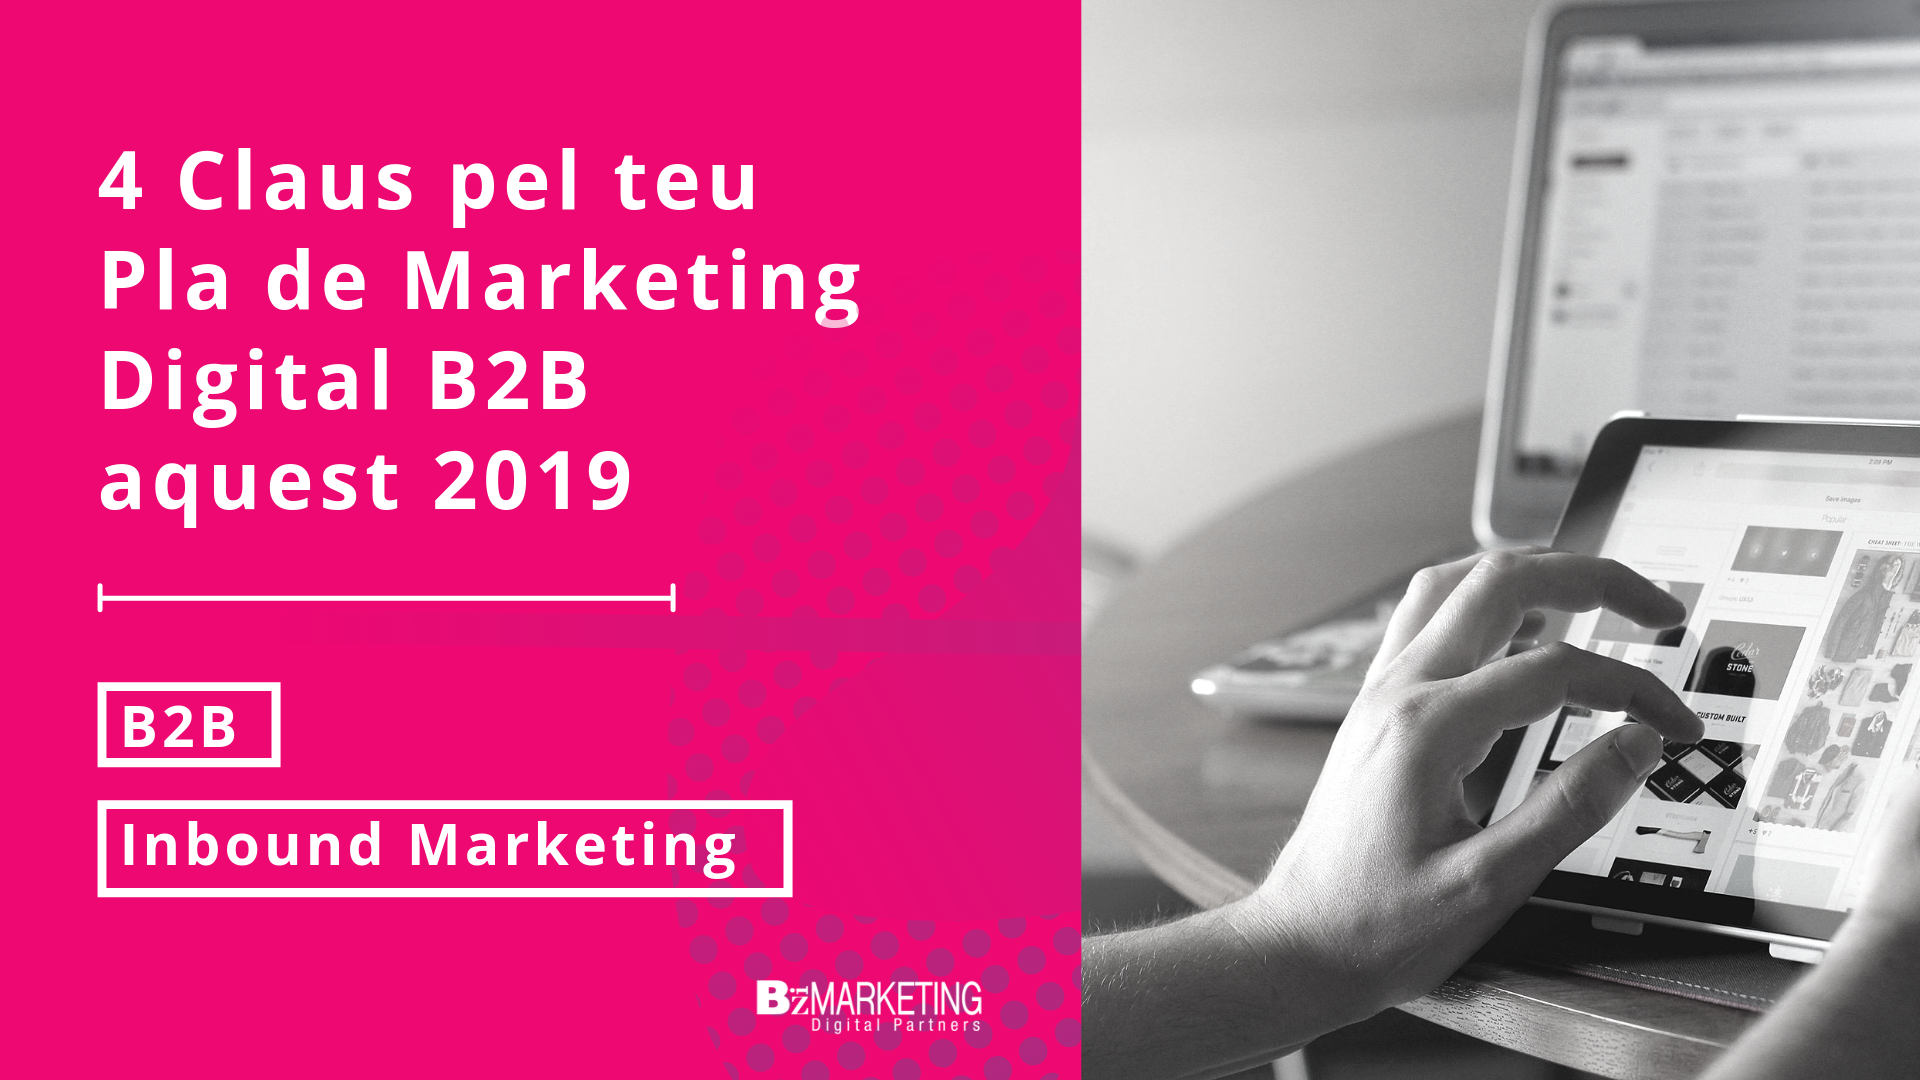 4-claus-pel-pla-de-marketing-digital-b2b-2019-bizmarketing